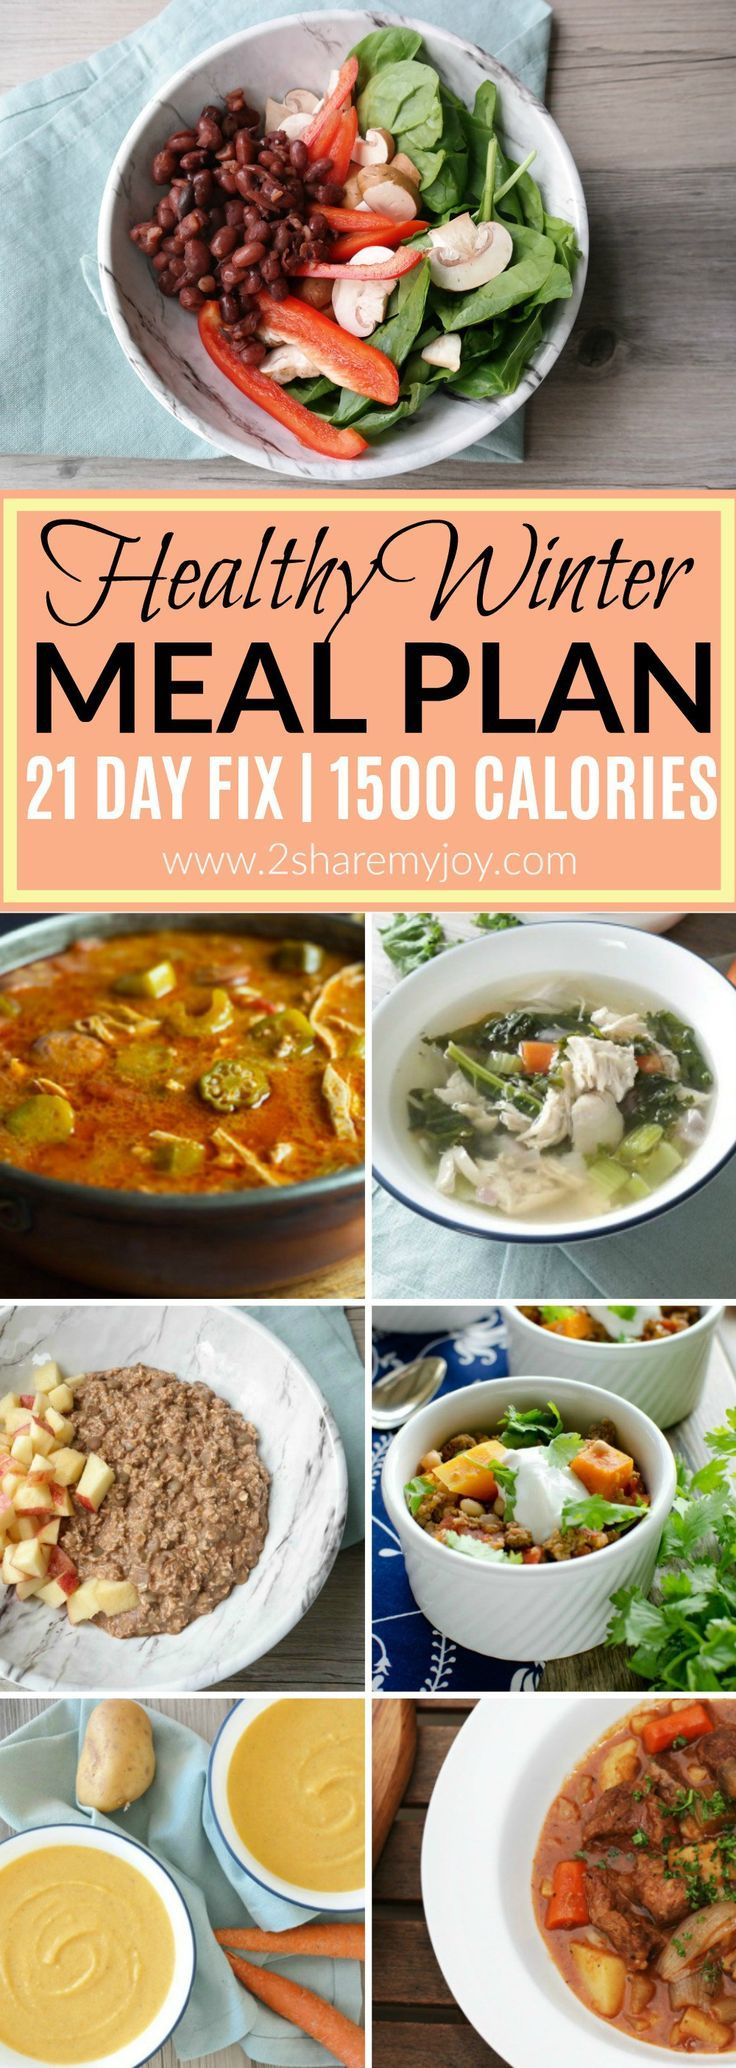 A healthy 1500 Calorie Winter Meal Plan that will help you to lose weight fast. This 21 day fix meal plan (plan B) is without shakeology and a great meal plan for beginners. It is frugal, Aldi friendly and you can change it into a vegetarian 21 day fix meal plan.